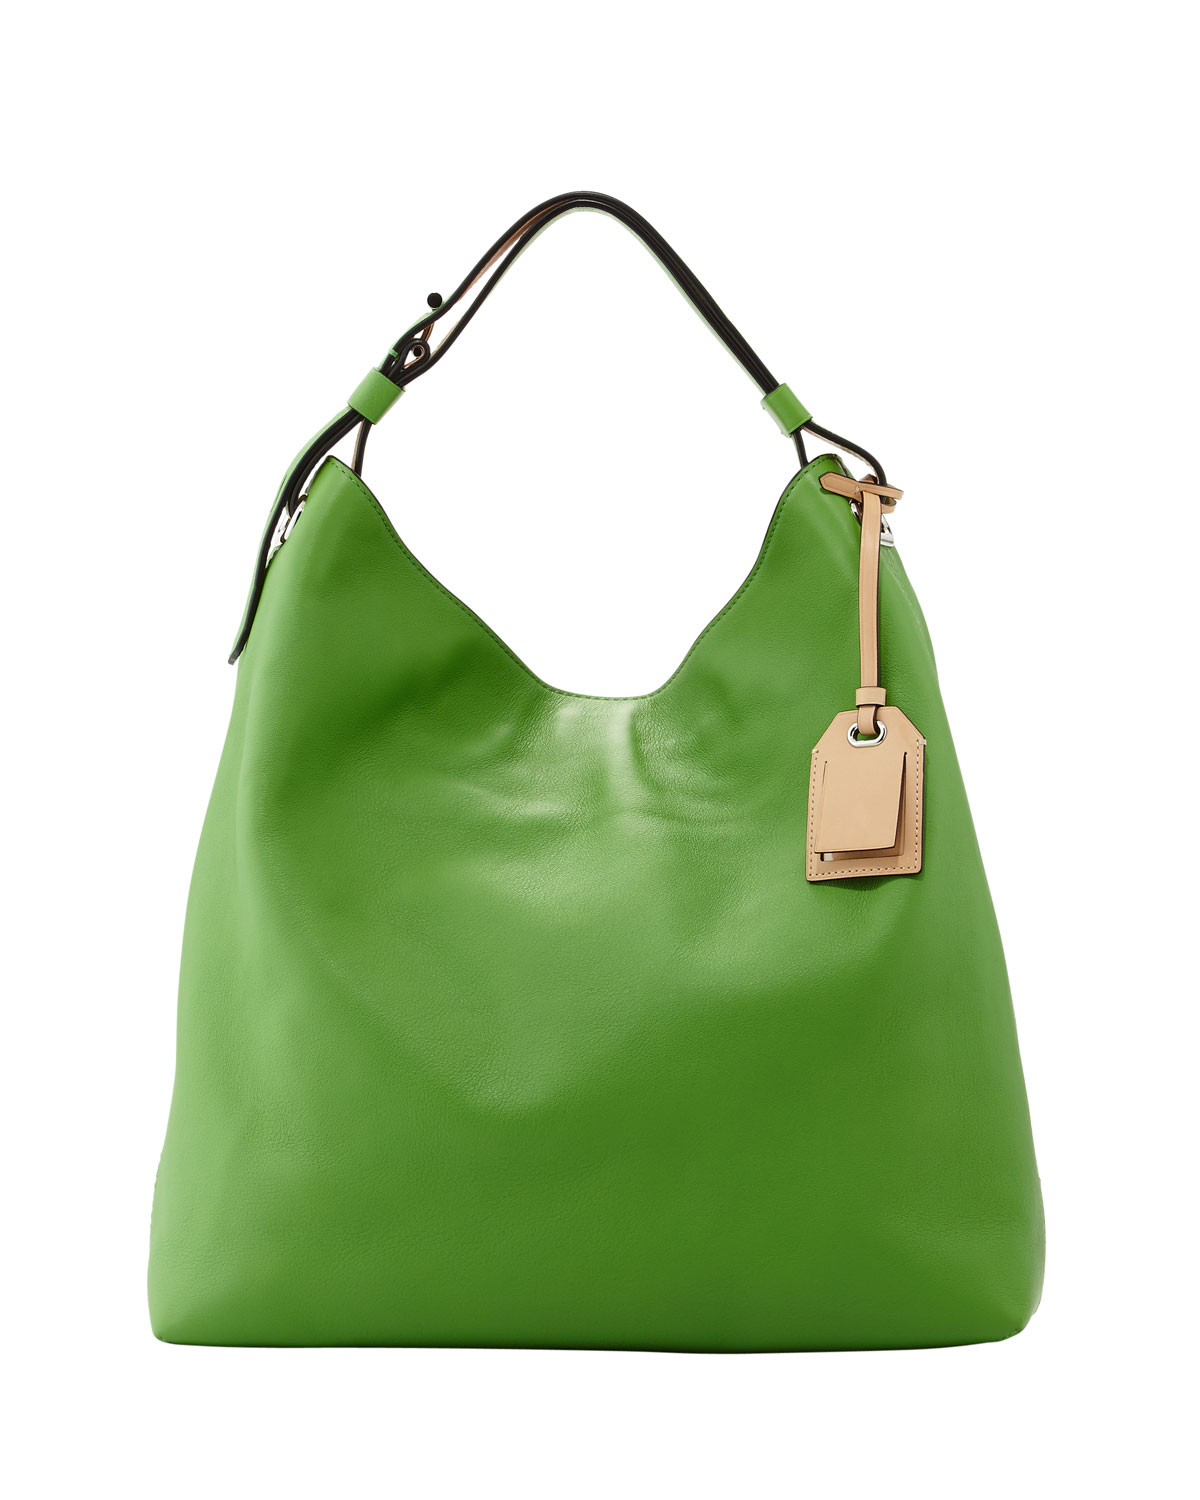 Reed krakoff Rdk Leather Hobo Bag Green in Green | Lyst